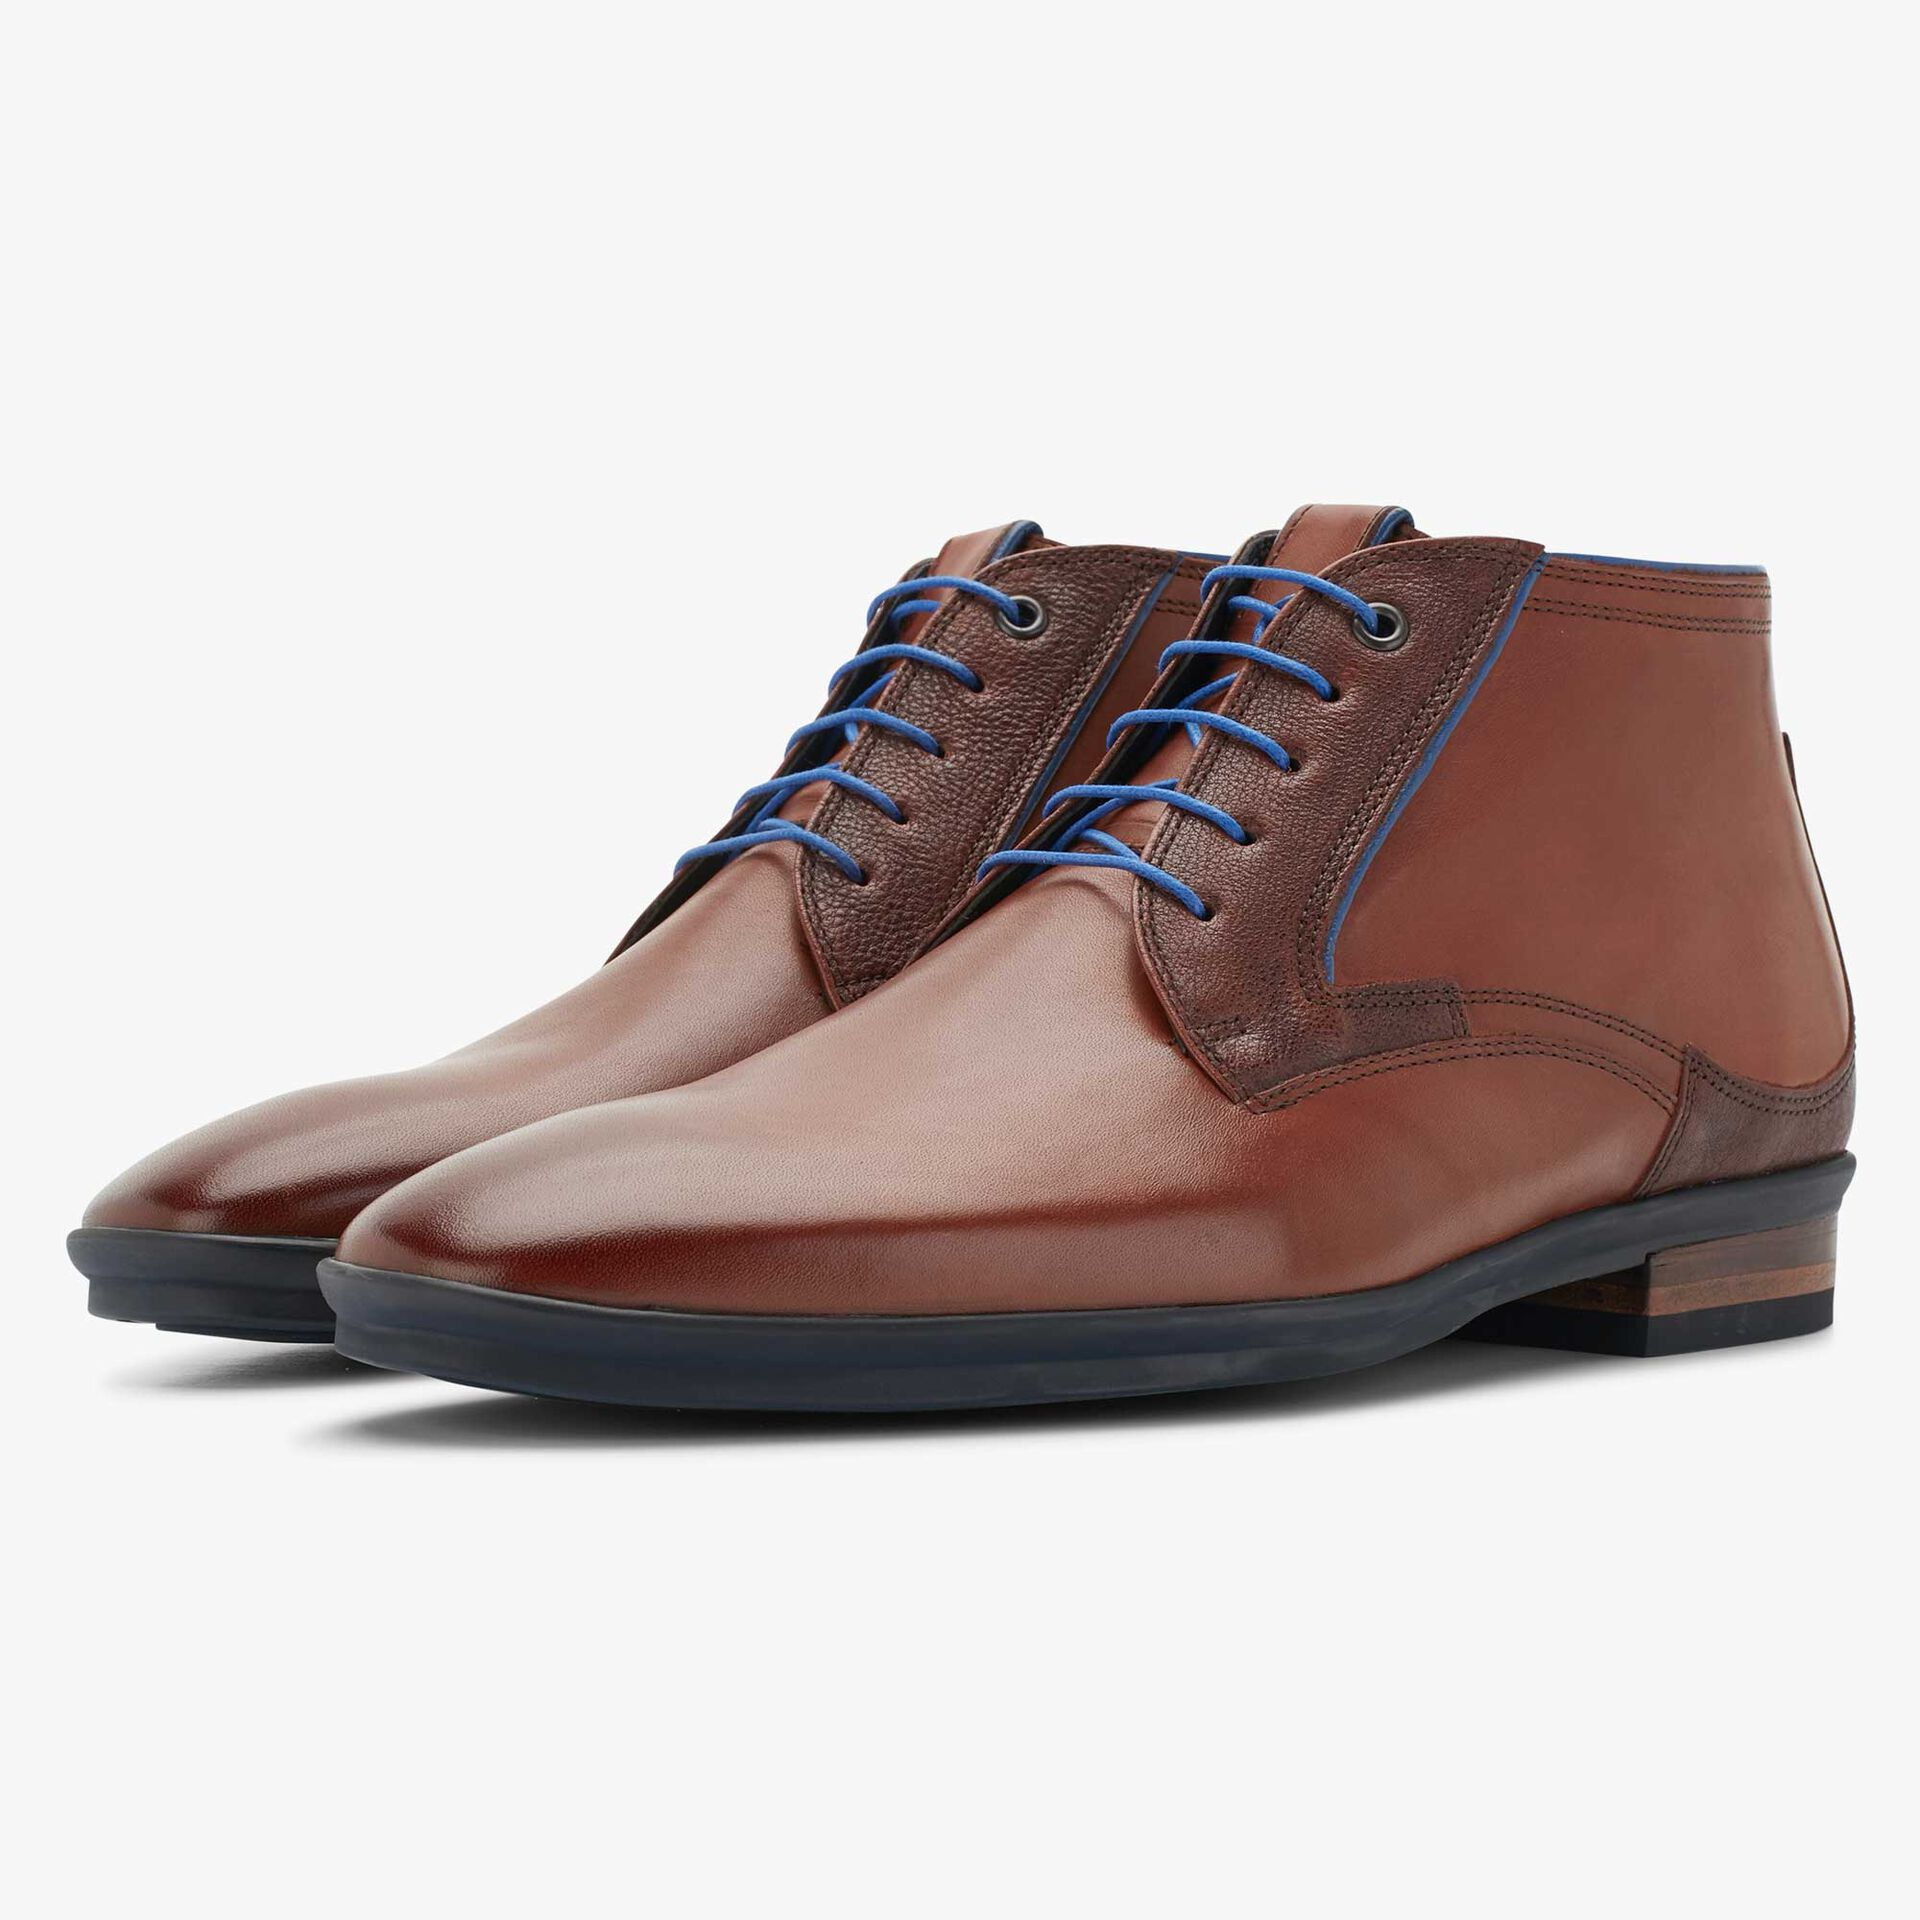 Floris van Bommel cognac leather men's lace-up boot